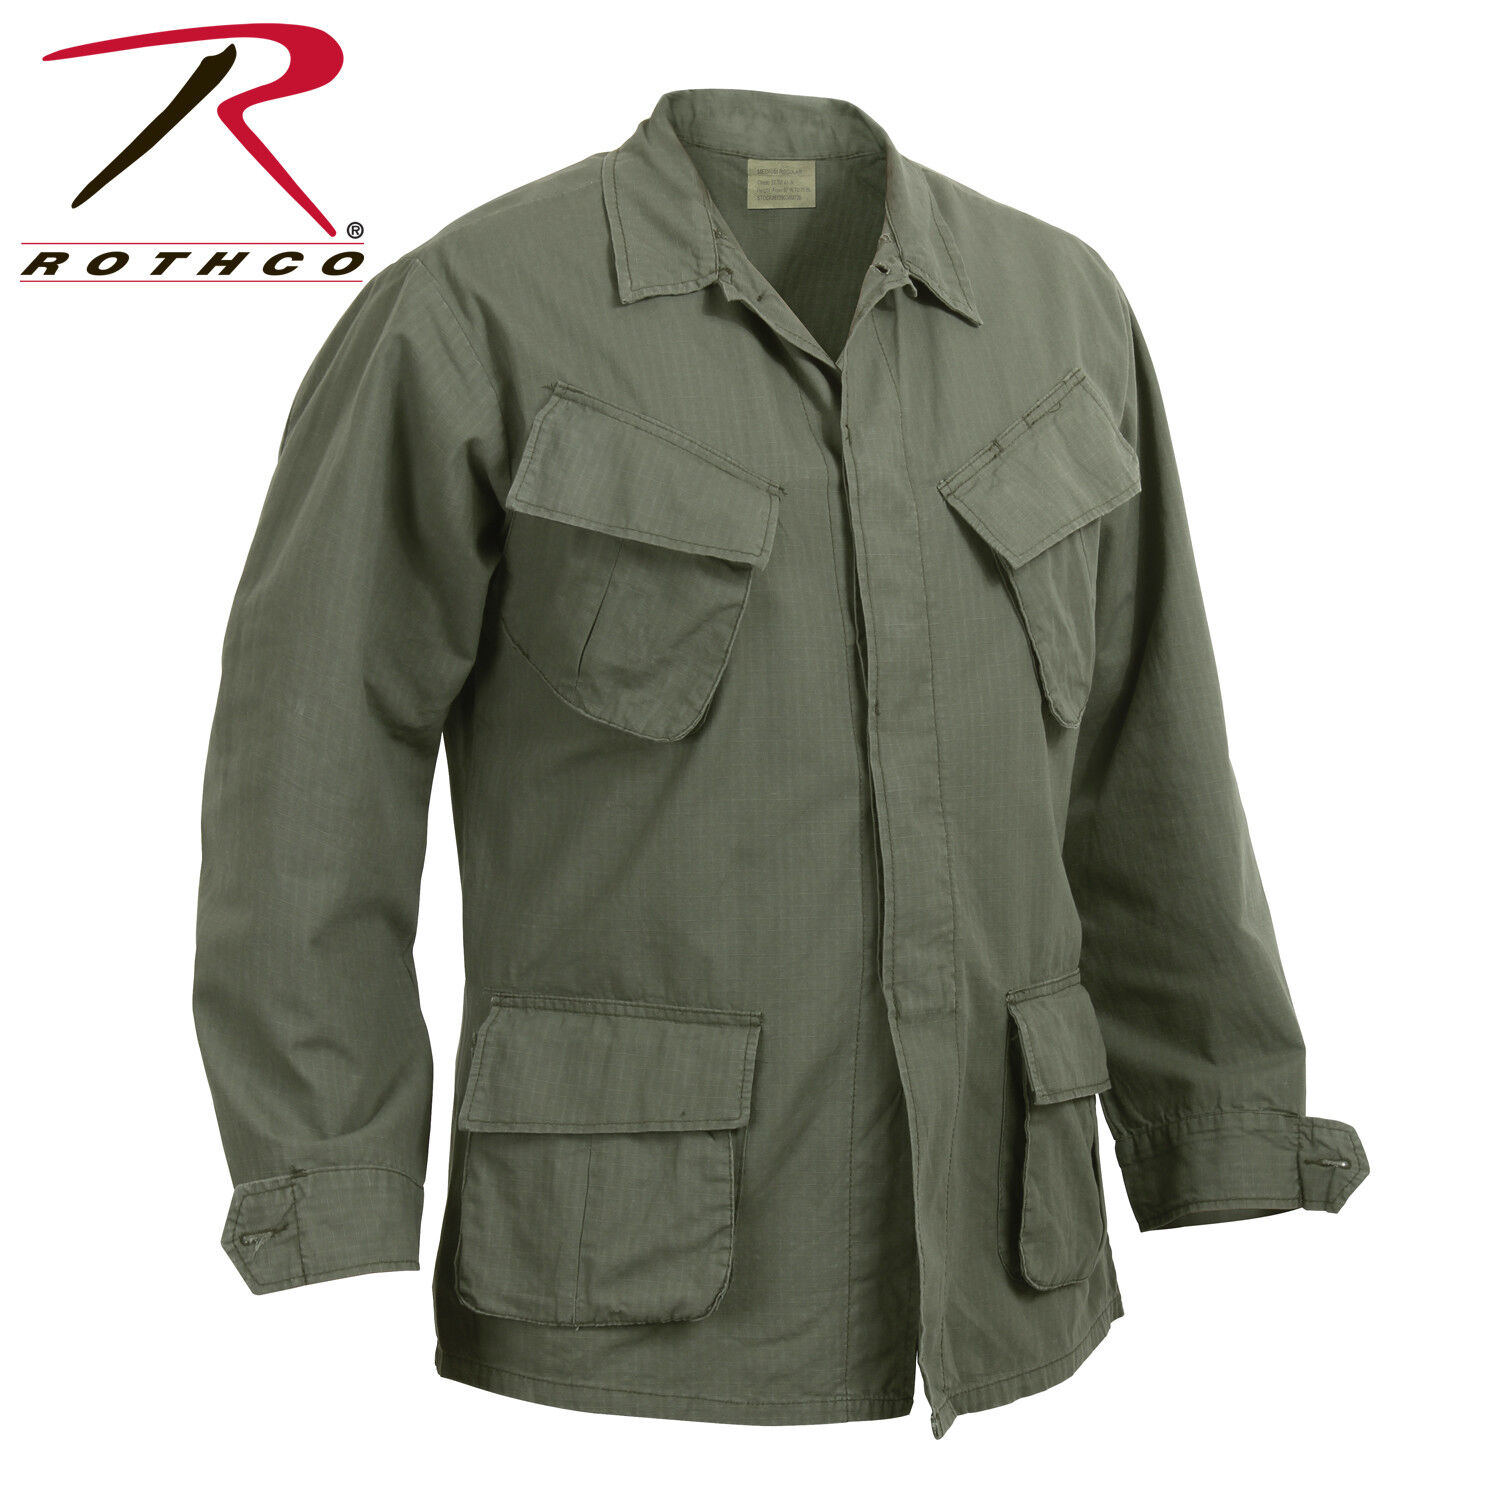 redhco Vintage Vietnam  Style Fatigue Shirts OLIVE DRAB  online fashion shopping